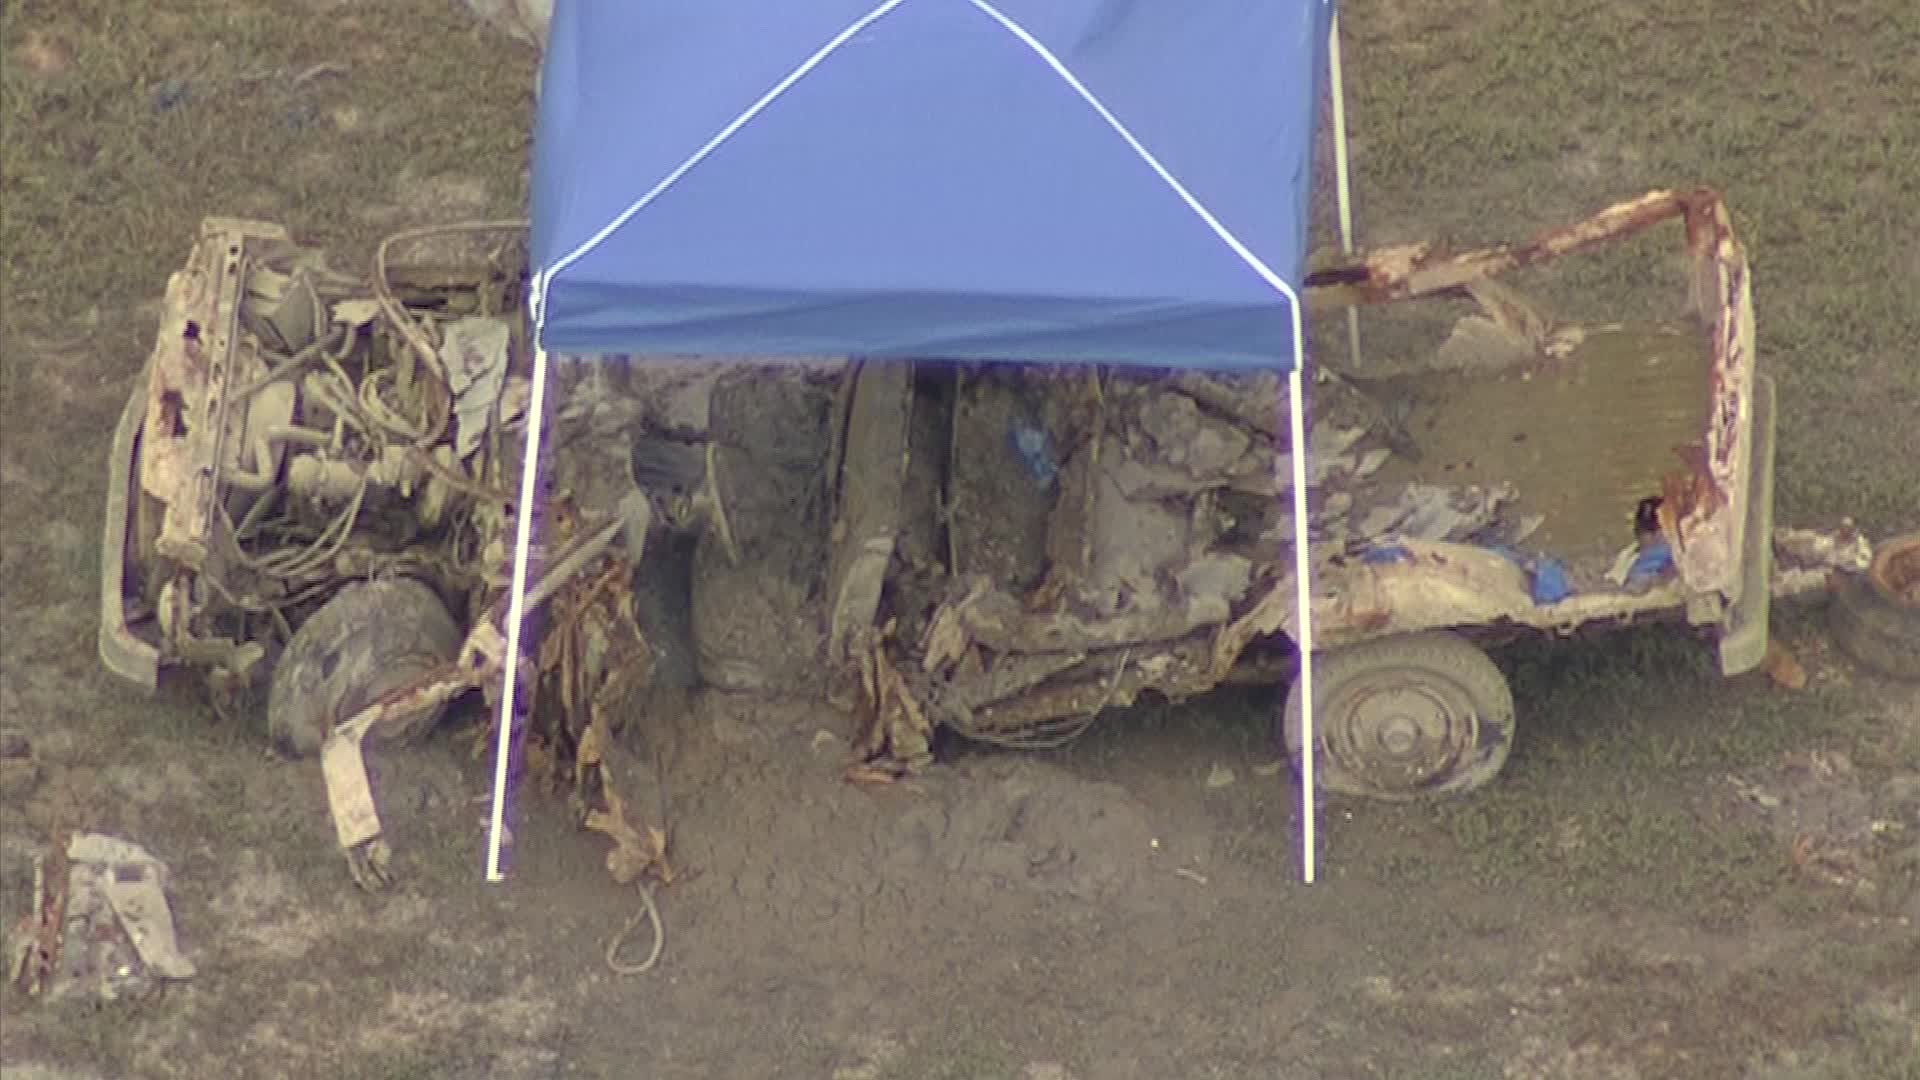 On Thursday a truck with a human skeleton inside was discovered in Lake Granbury in Hood County. The truck was found near the Lake Bridge on Business 377 in Granbury. Investigators believe the remains may be the body of Helen Hollady who disappeared 35 years ago.